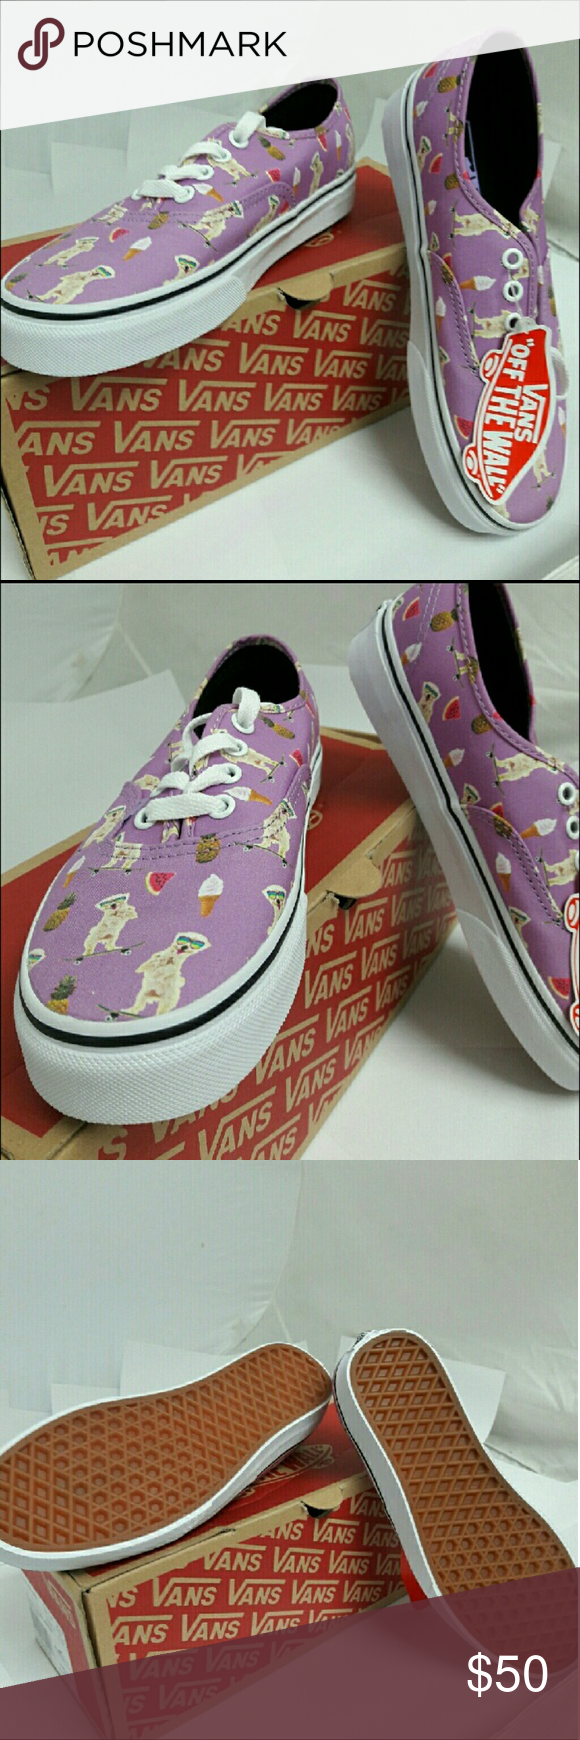 f0a9f4a3dc VANS Auth. Pool Vibes Violet Skateboarding Dog Brand New With Tags and  Box!! Size Womens 8. Purple canvas